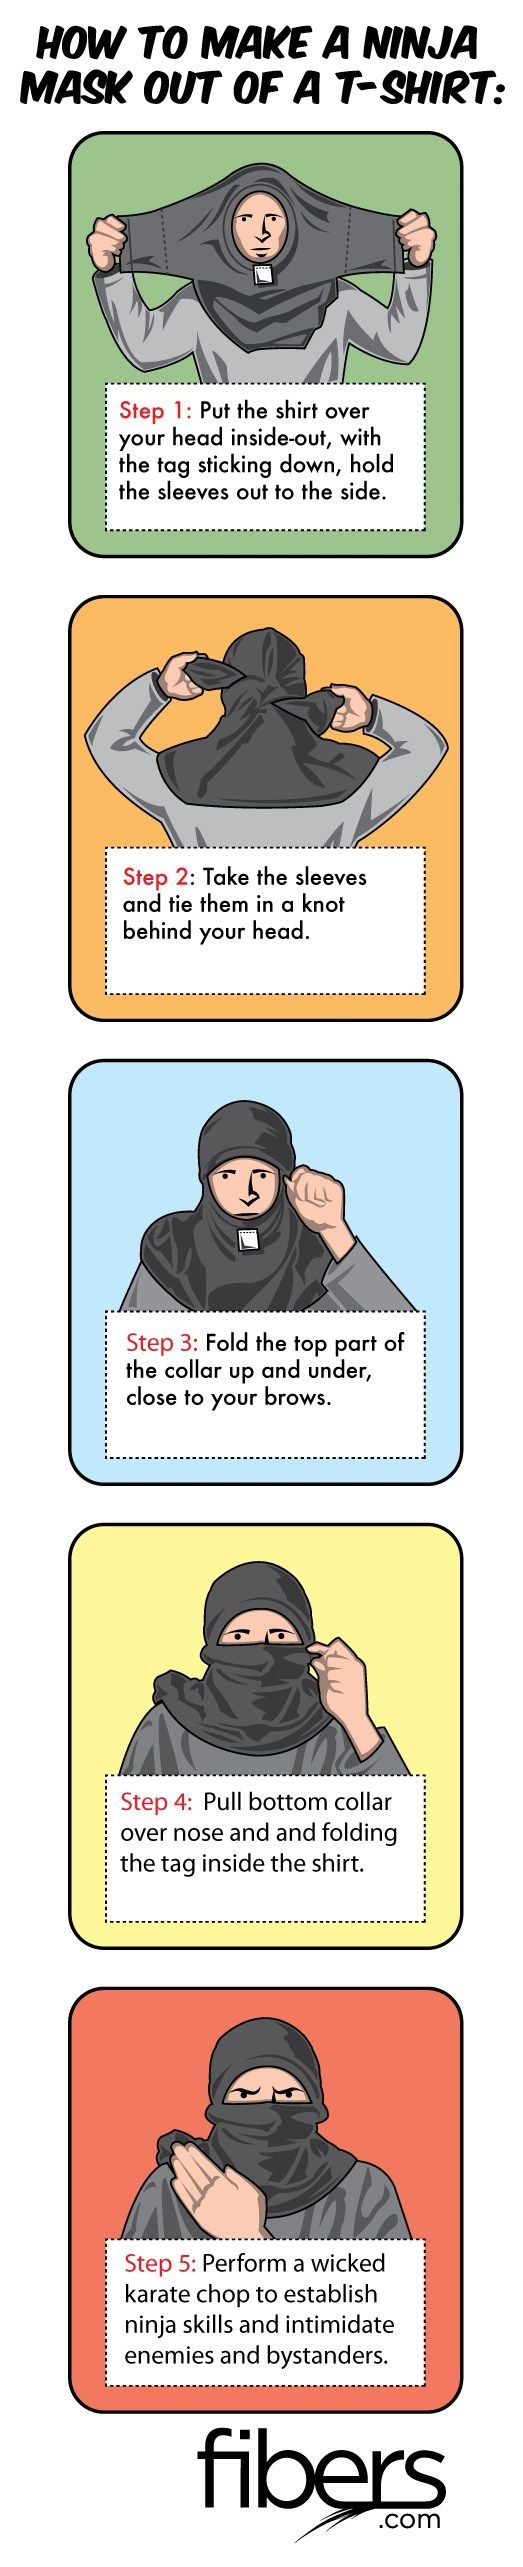 How to Make a Ninja Mask Out of a T-SHirt in Just 5 Easy Steps                                                                                                                                                     More